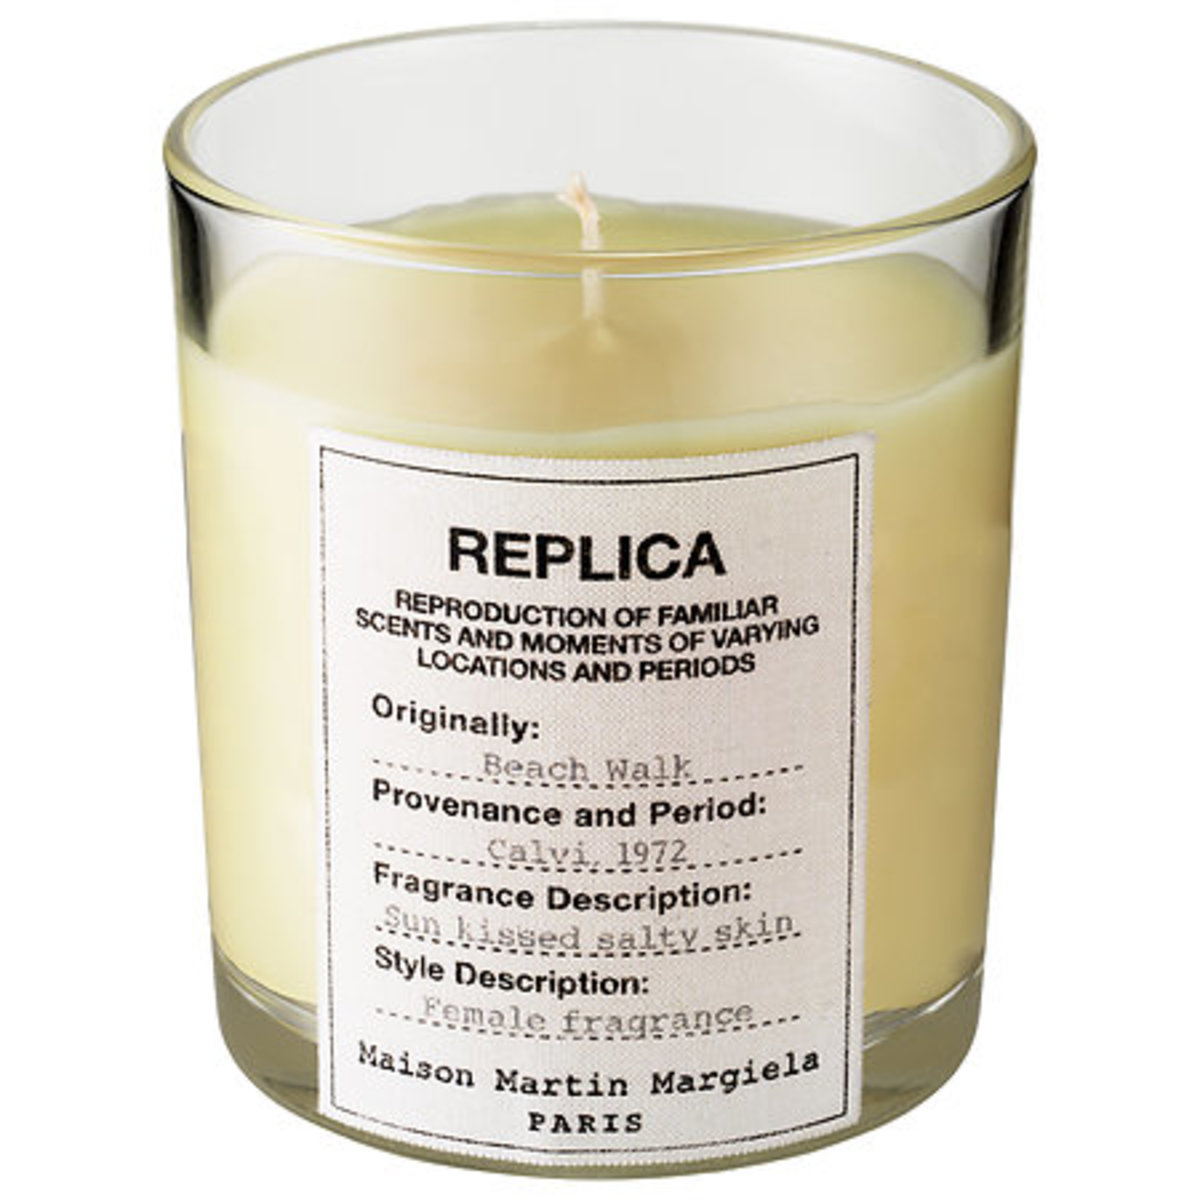 Maison Margiela Replica Beach Walk Scented Candle, $60, available at Sephora.